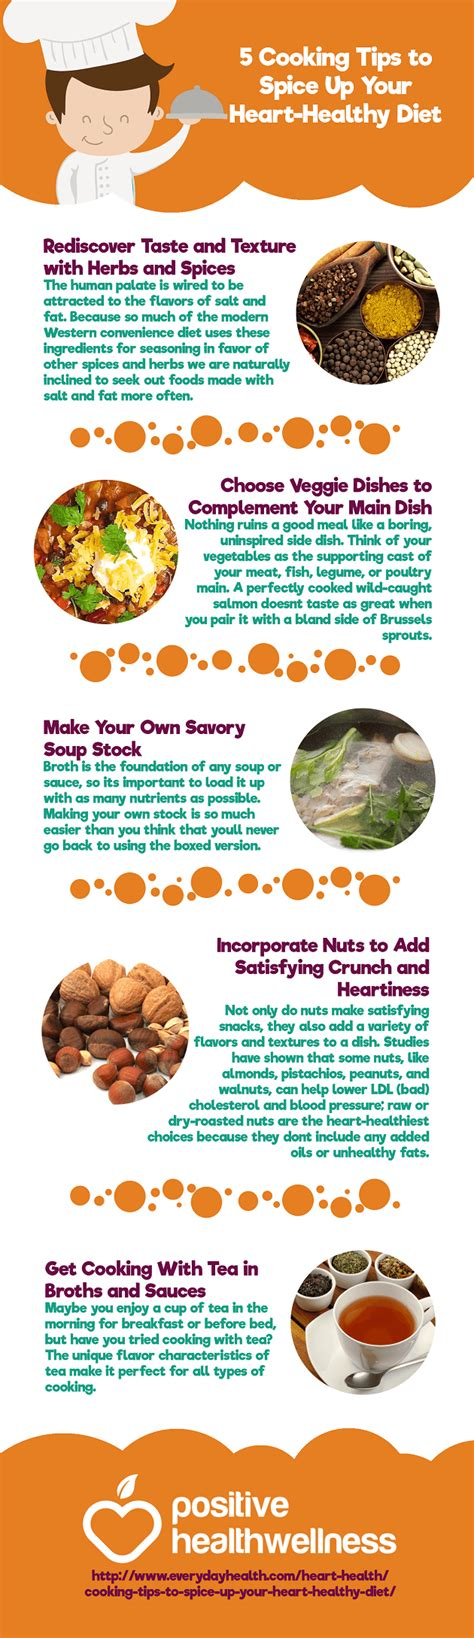 5 Cooking Tips To Spice Up Your Hearthealthy Diet